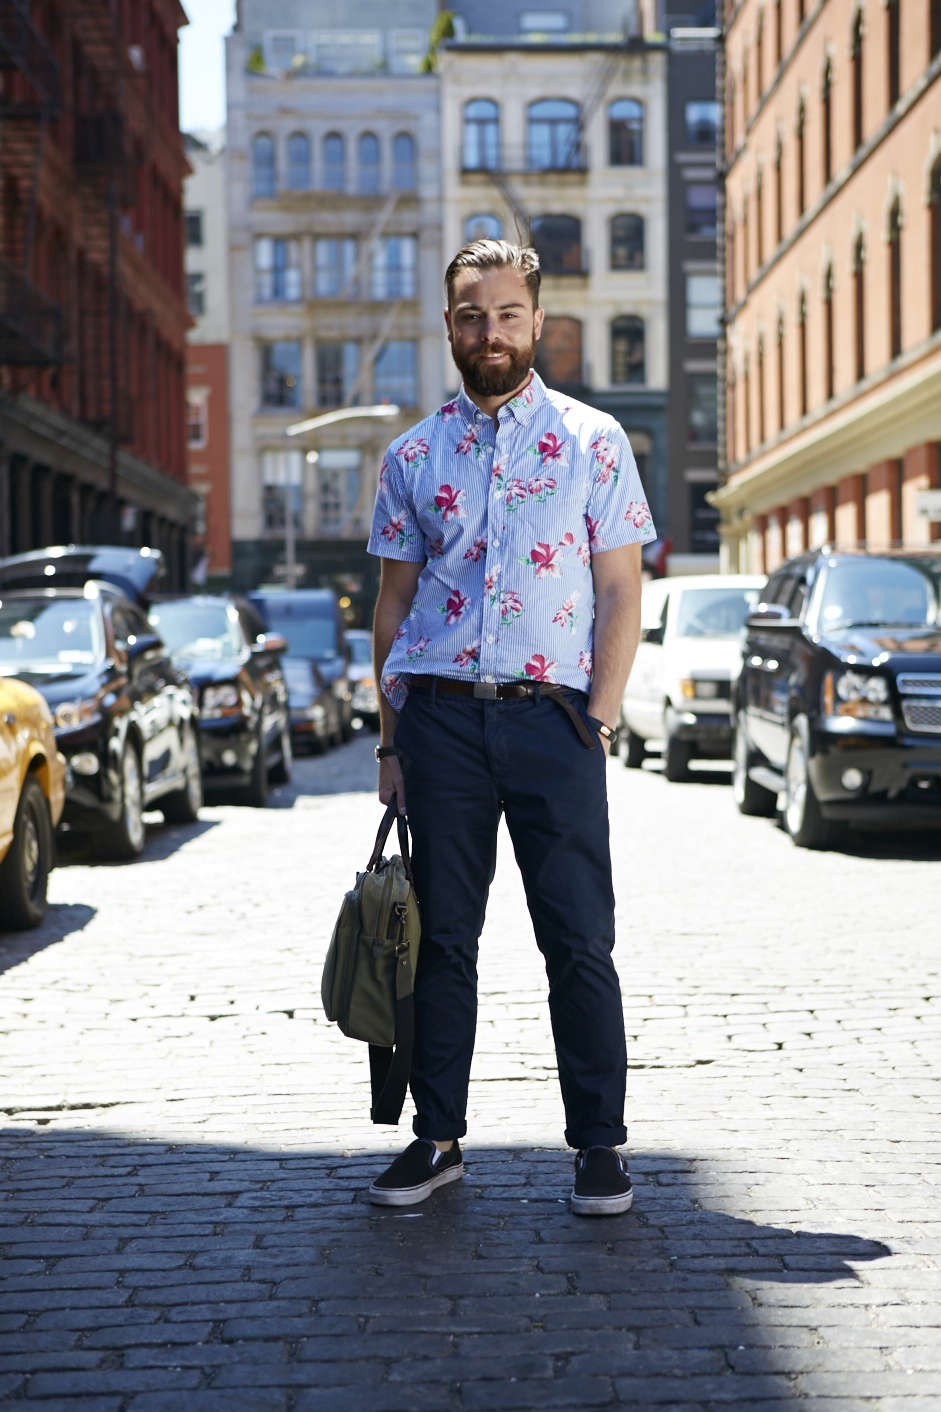 My Favorite Men S Summer 2014 Fashion The Online Brand Bonobos Konni Kim